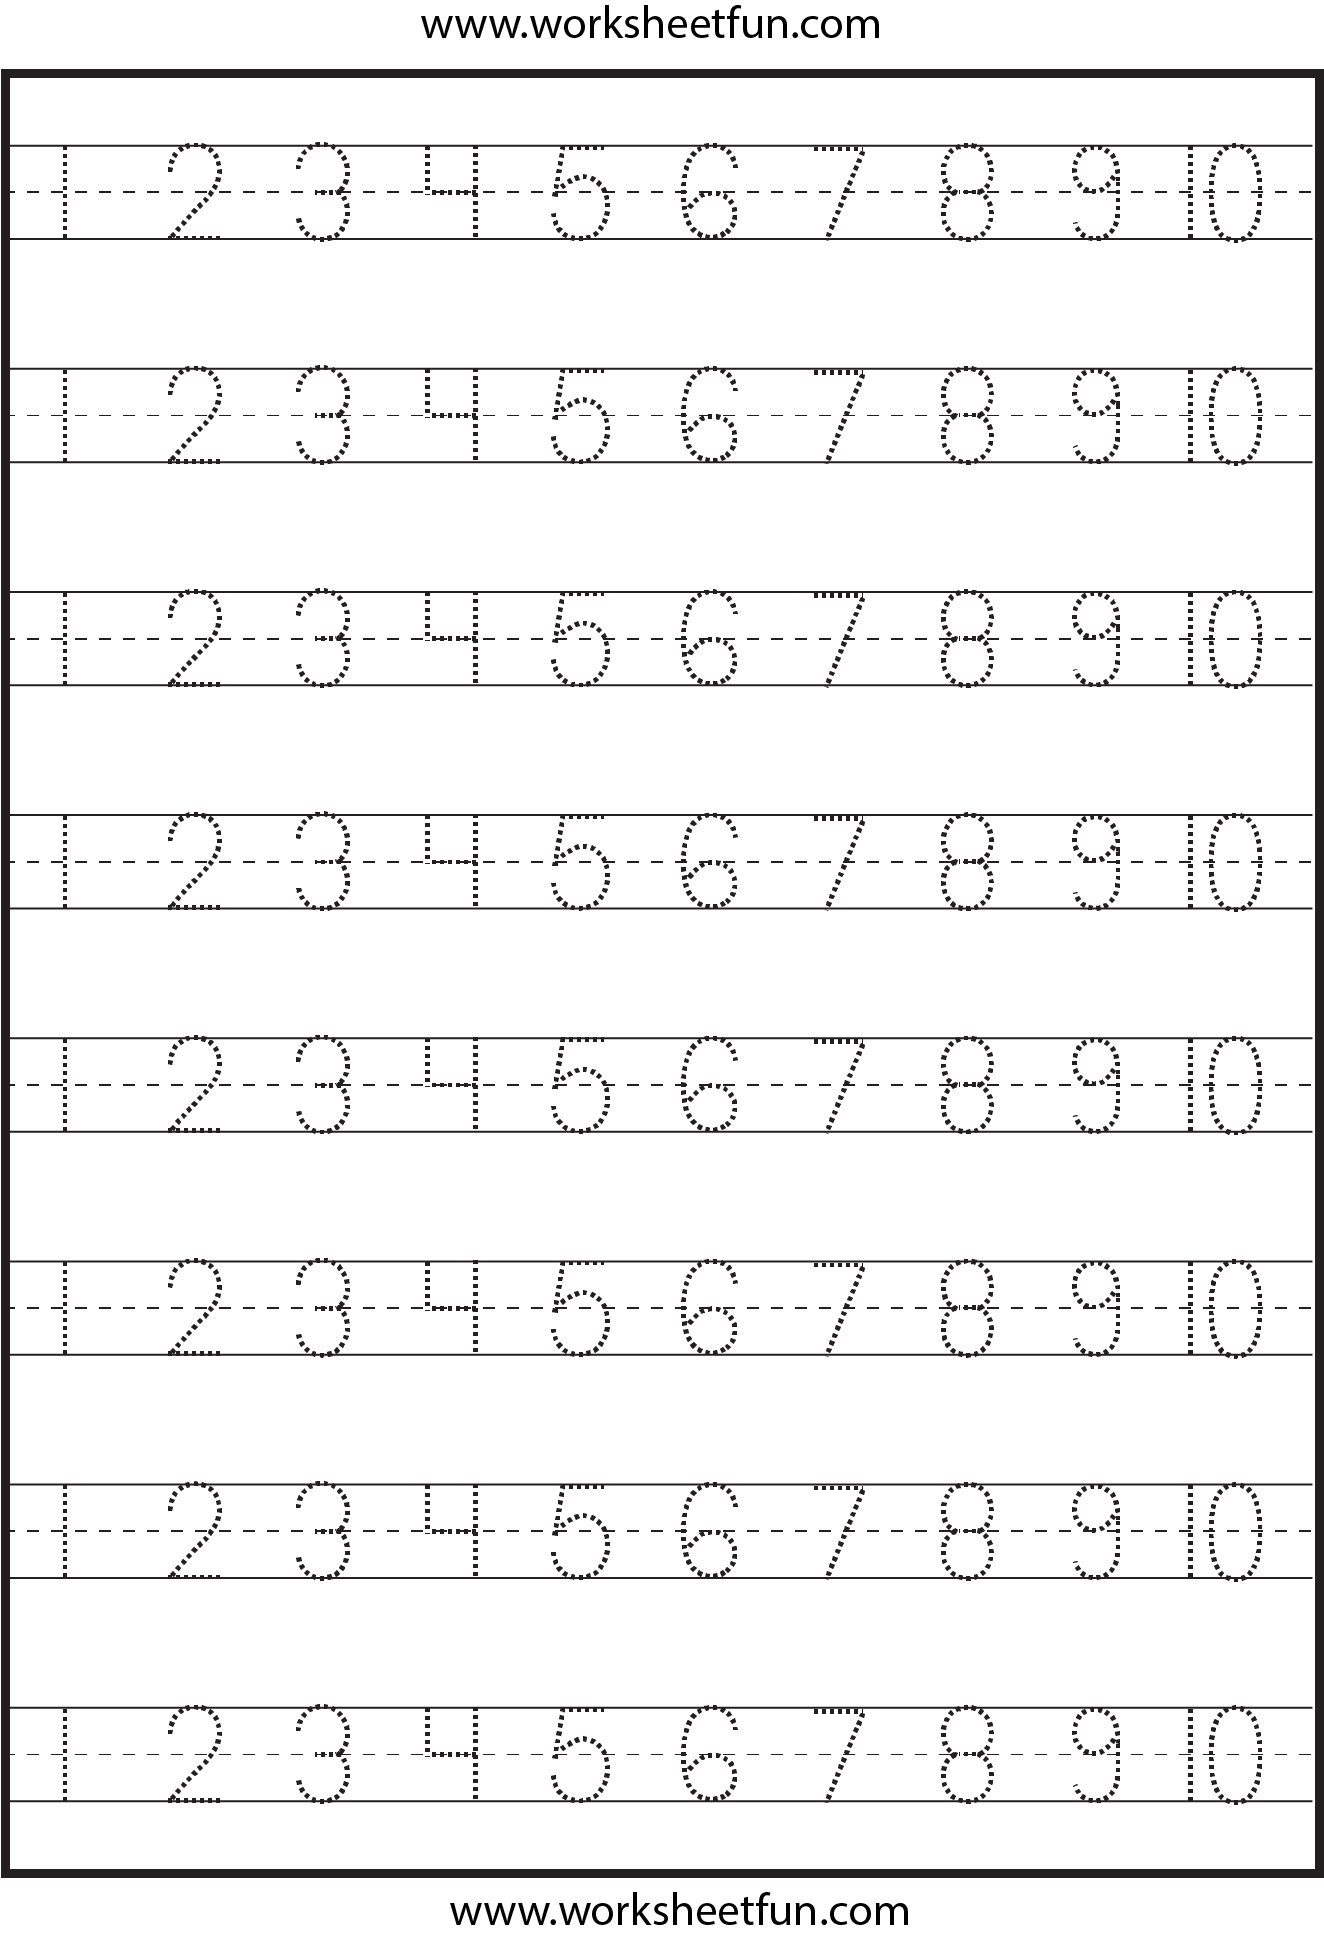 worksheet Counting Worksheets 1 20 number tracing 1 10 worksheet free printable worksheets tracing